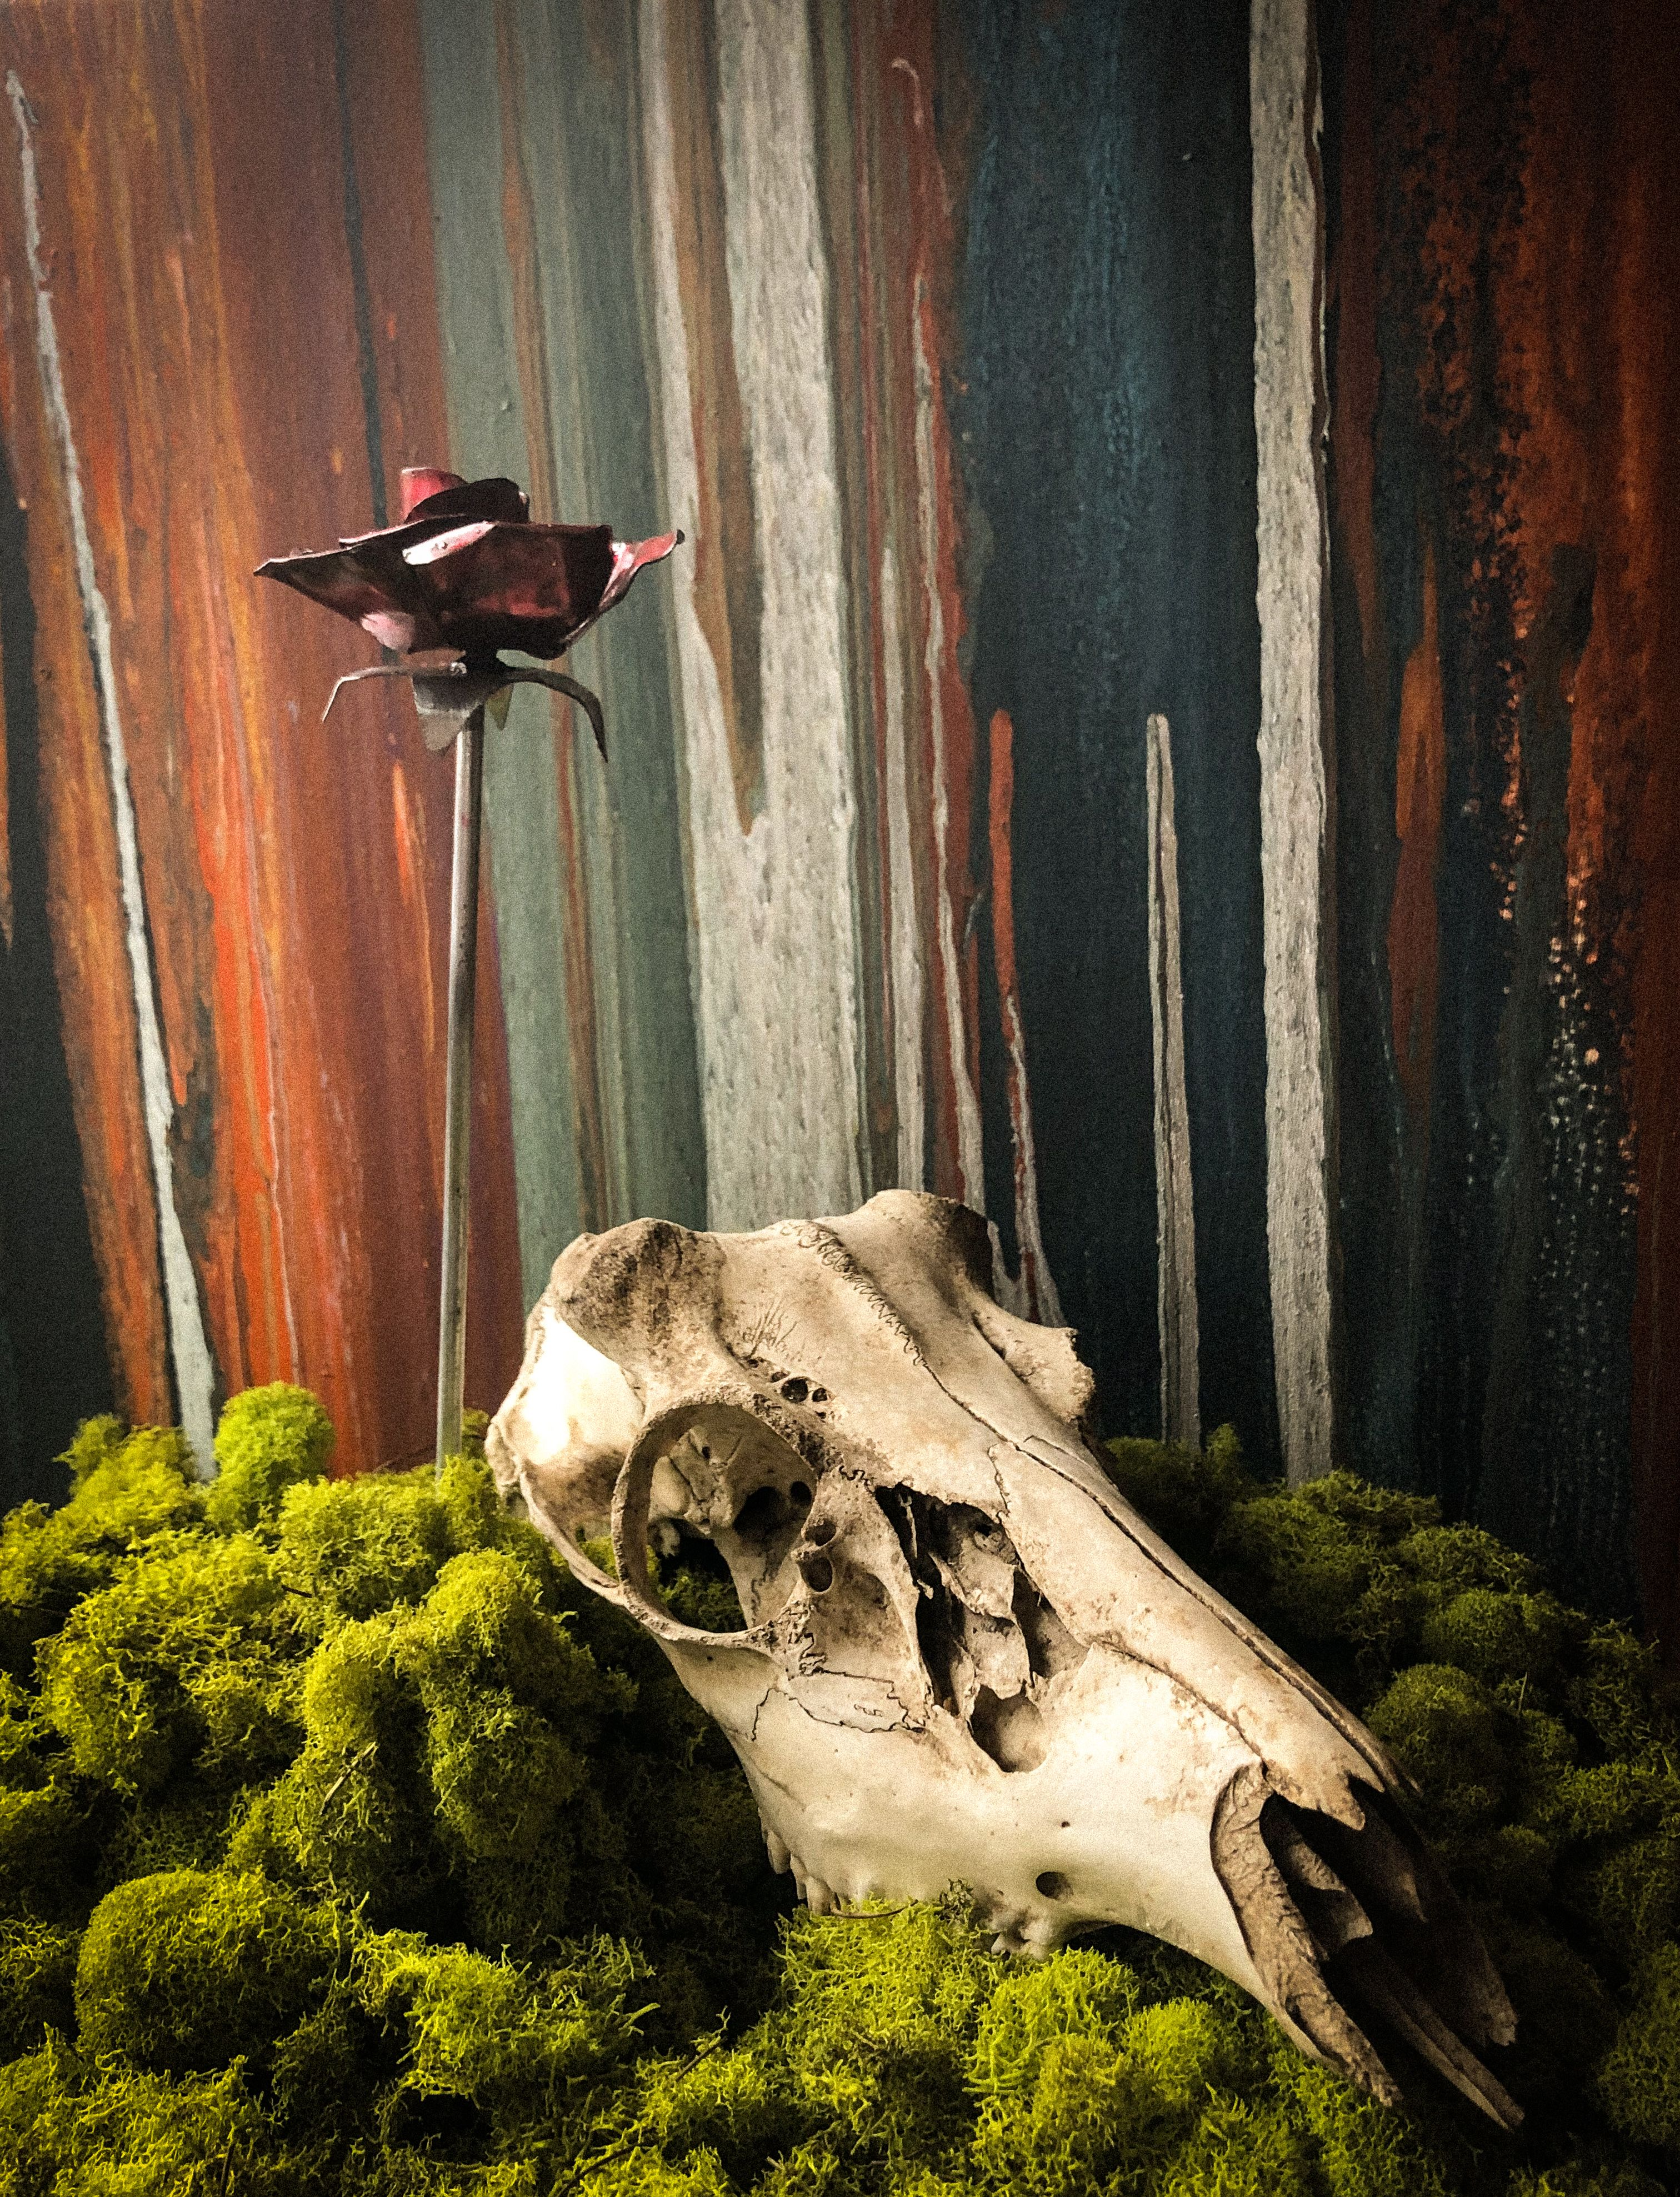 Beautify your home with gothic woodland decor. Gothic